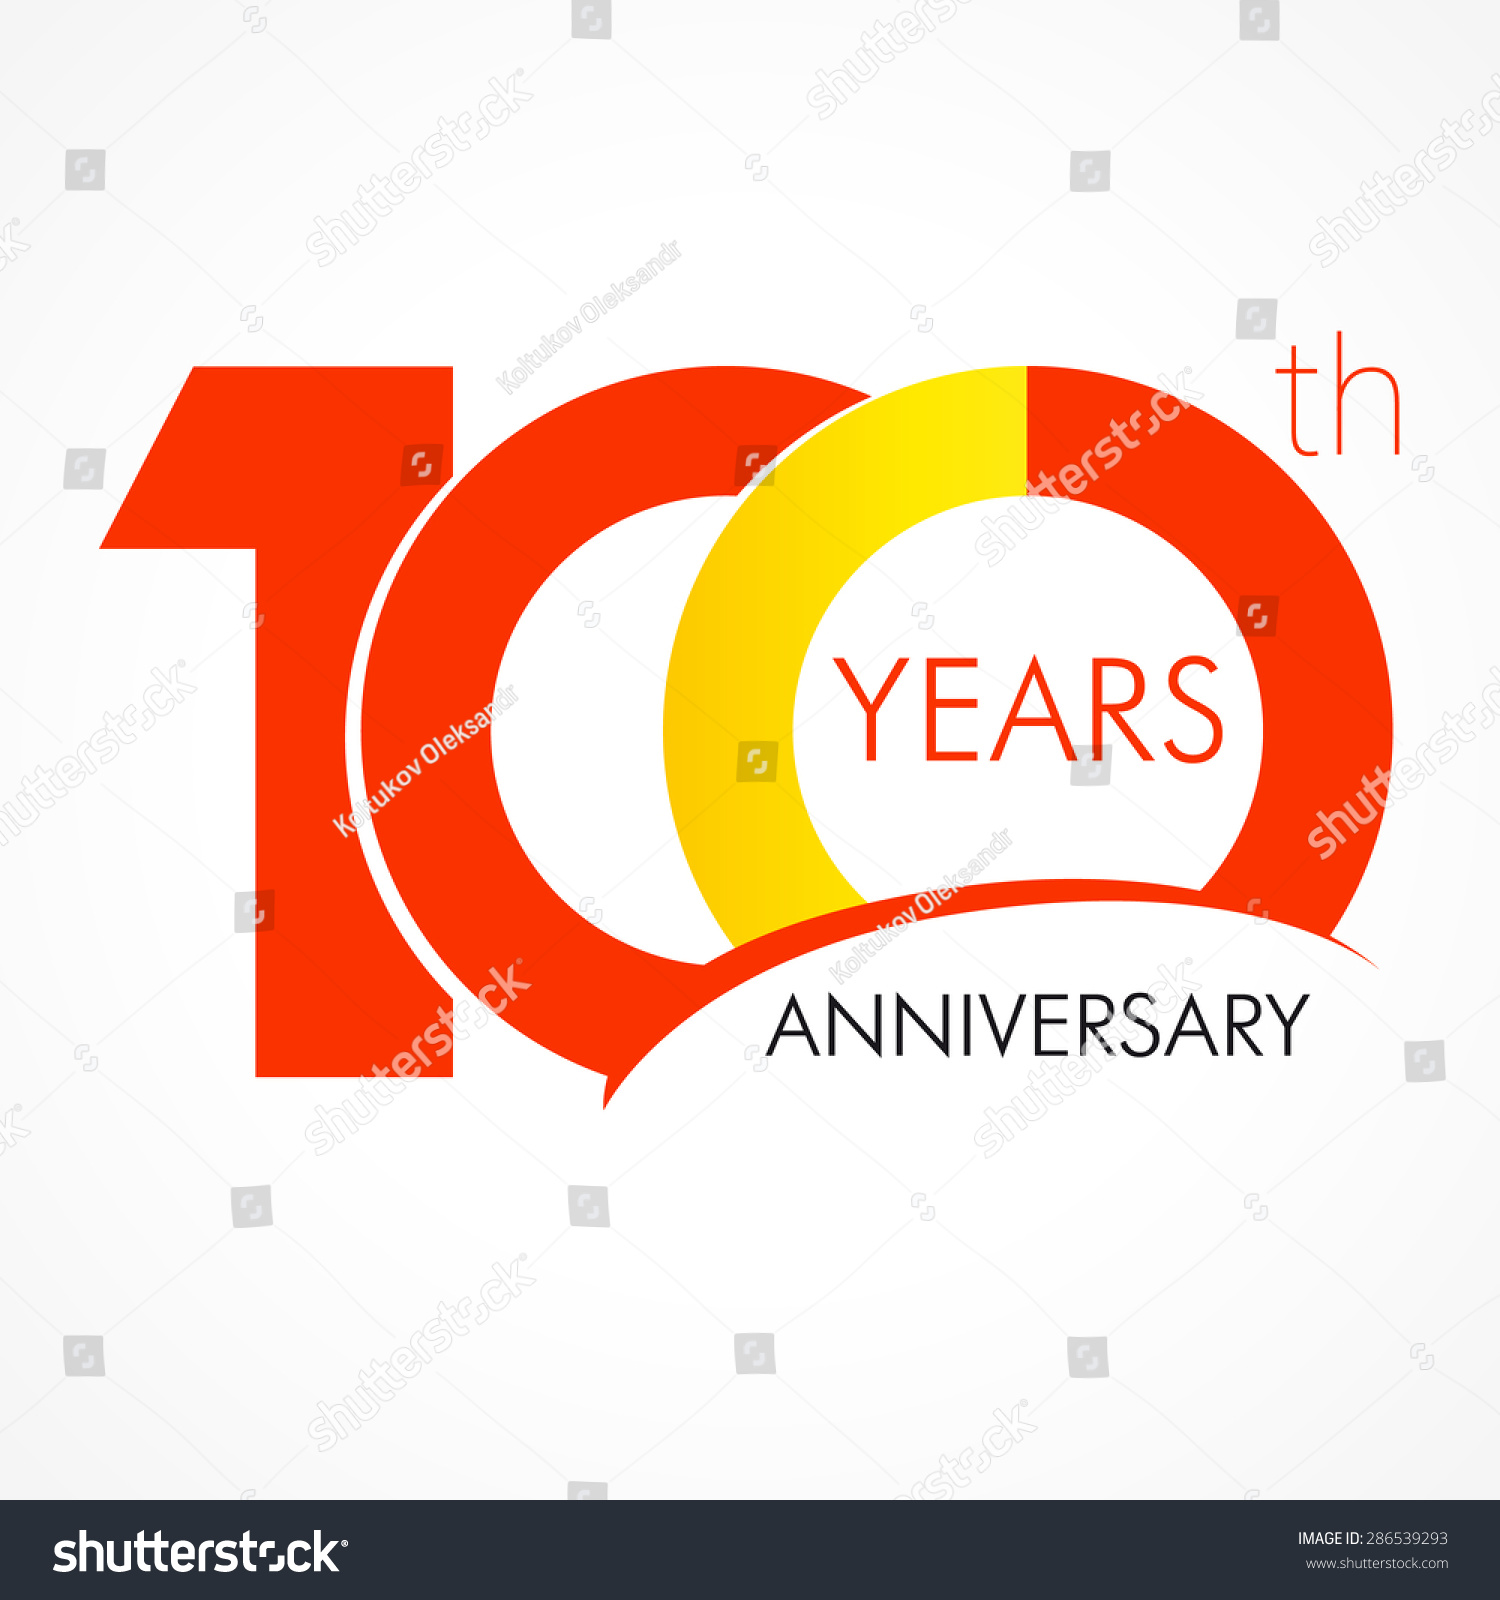 ... 100 years anniversary logo. 100 jubilee design, number 100 vector, 100